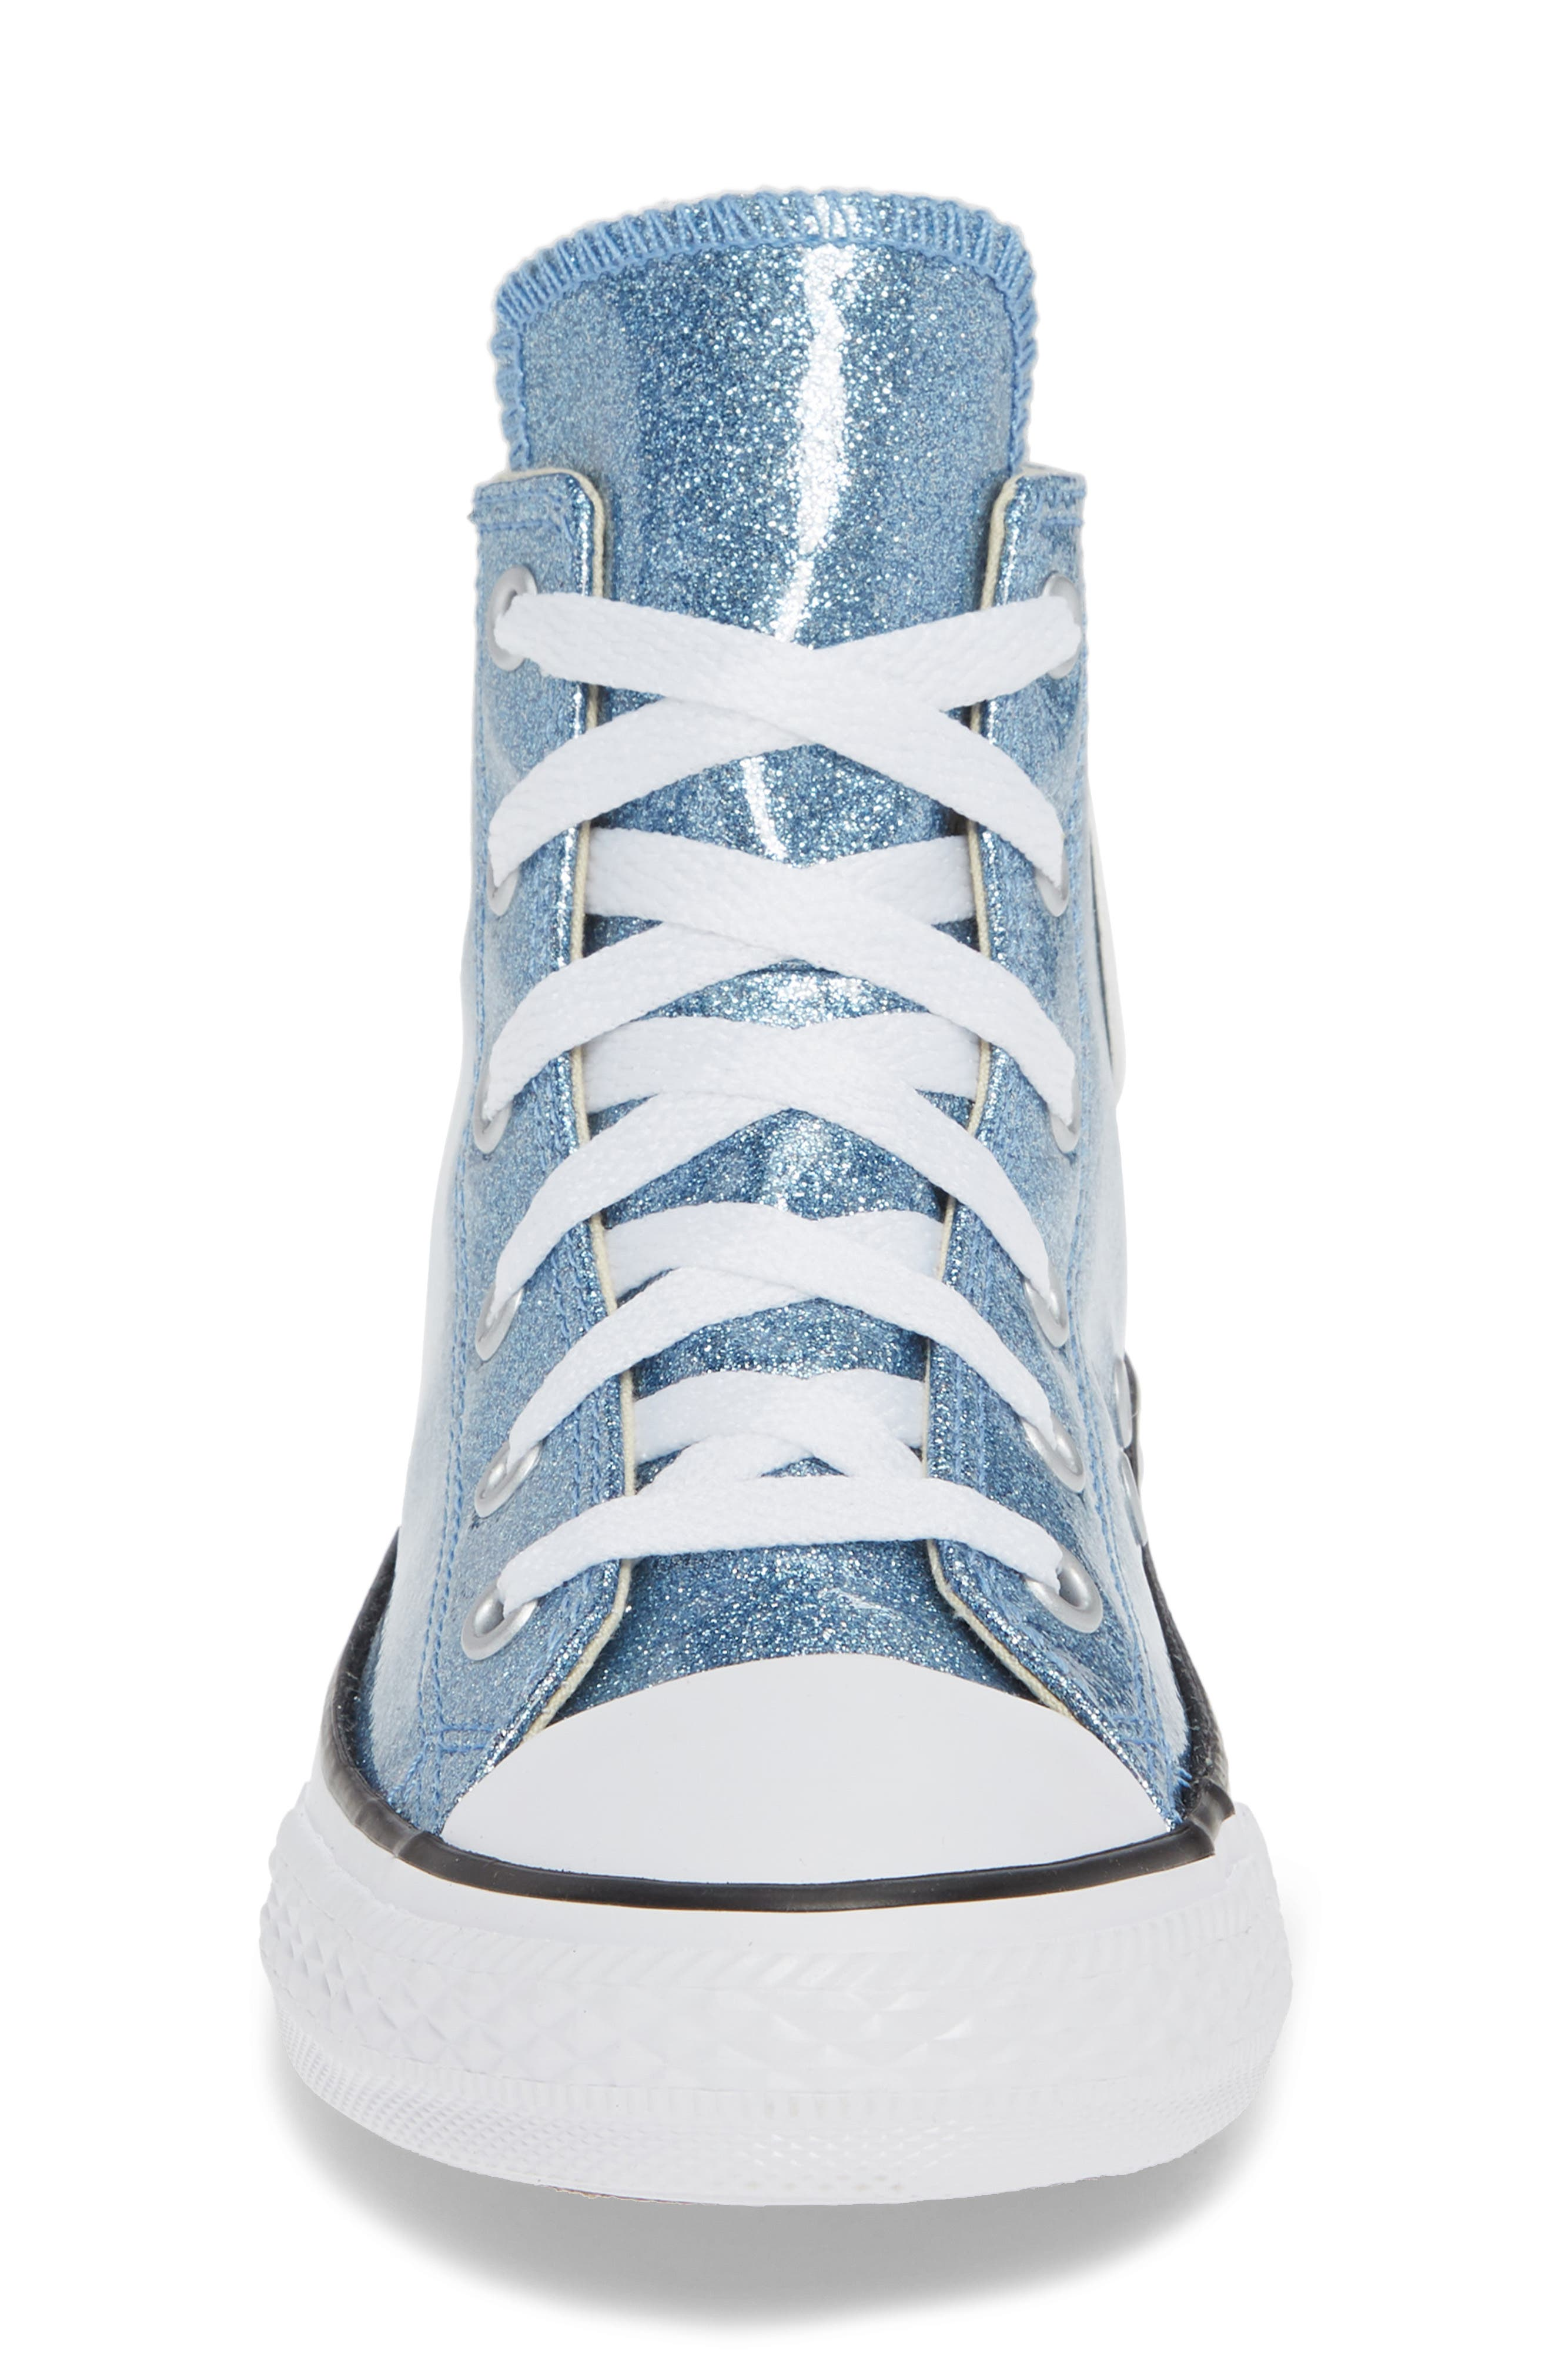 All Star<sup>®</sup> Glitter High Top Sneaker,                             Alternate thumbnail 6, color,                             Light Blue